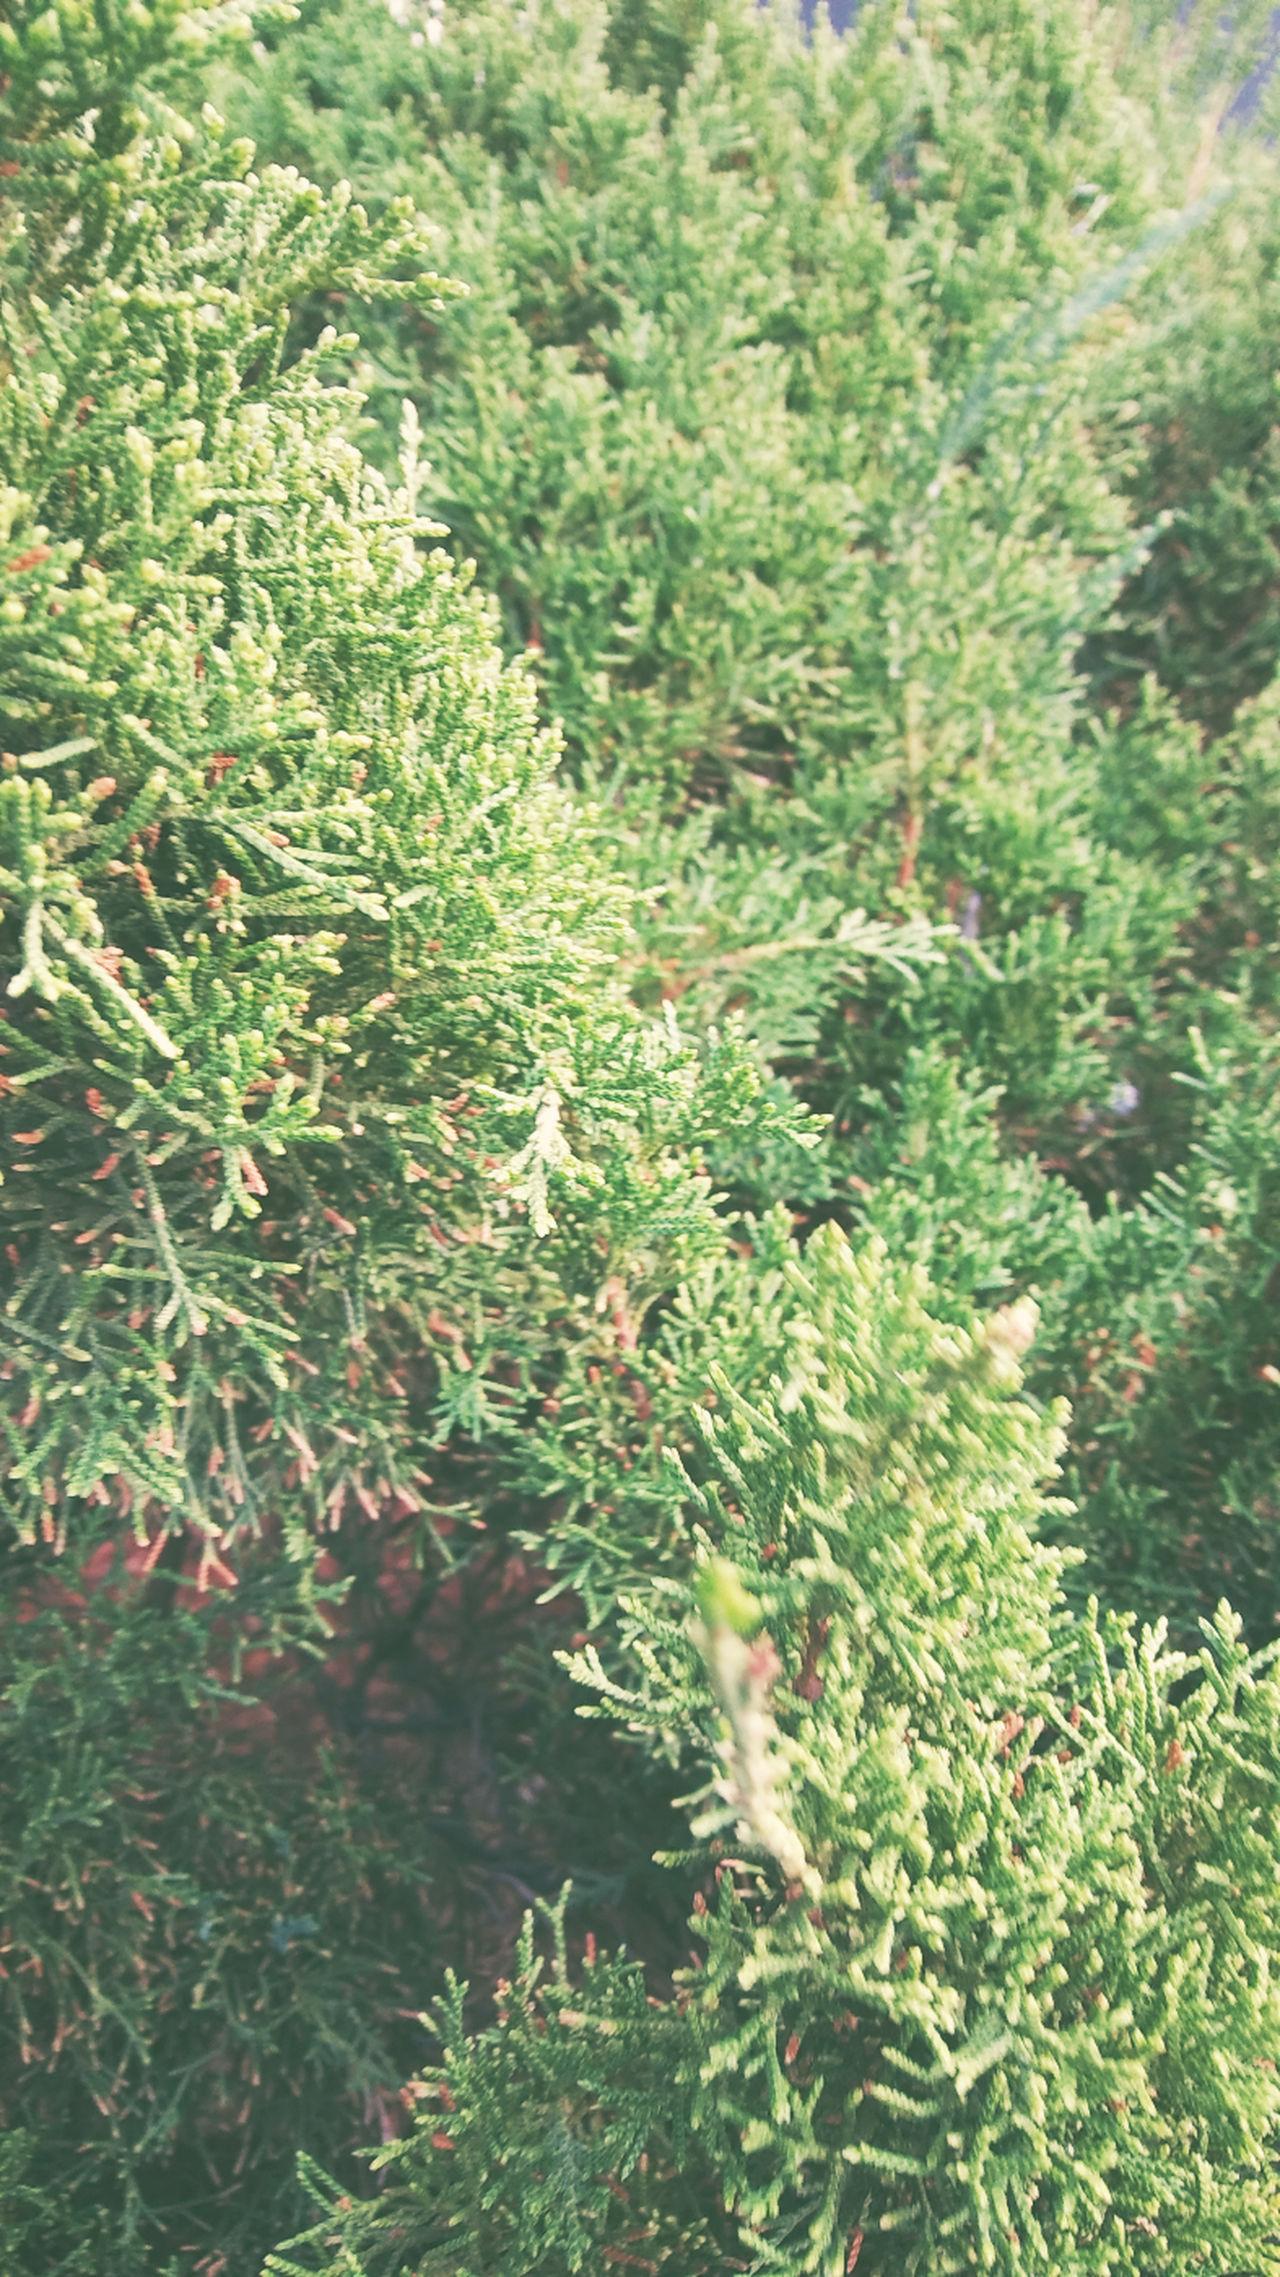 Nature Growth No People Backgrounds Green Color Plant Outdoors Day Beauty In Nature Freshness Plants 🌱 Original Agriculture Calming New Plant Plant Photographer Pine Christmas Tree Chrstmas:)) Close Up Photography Taking Photos Freshness